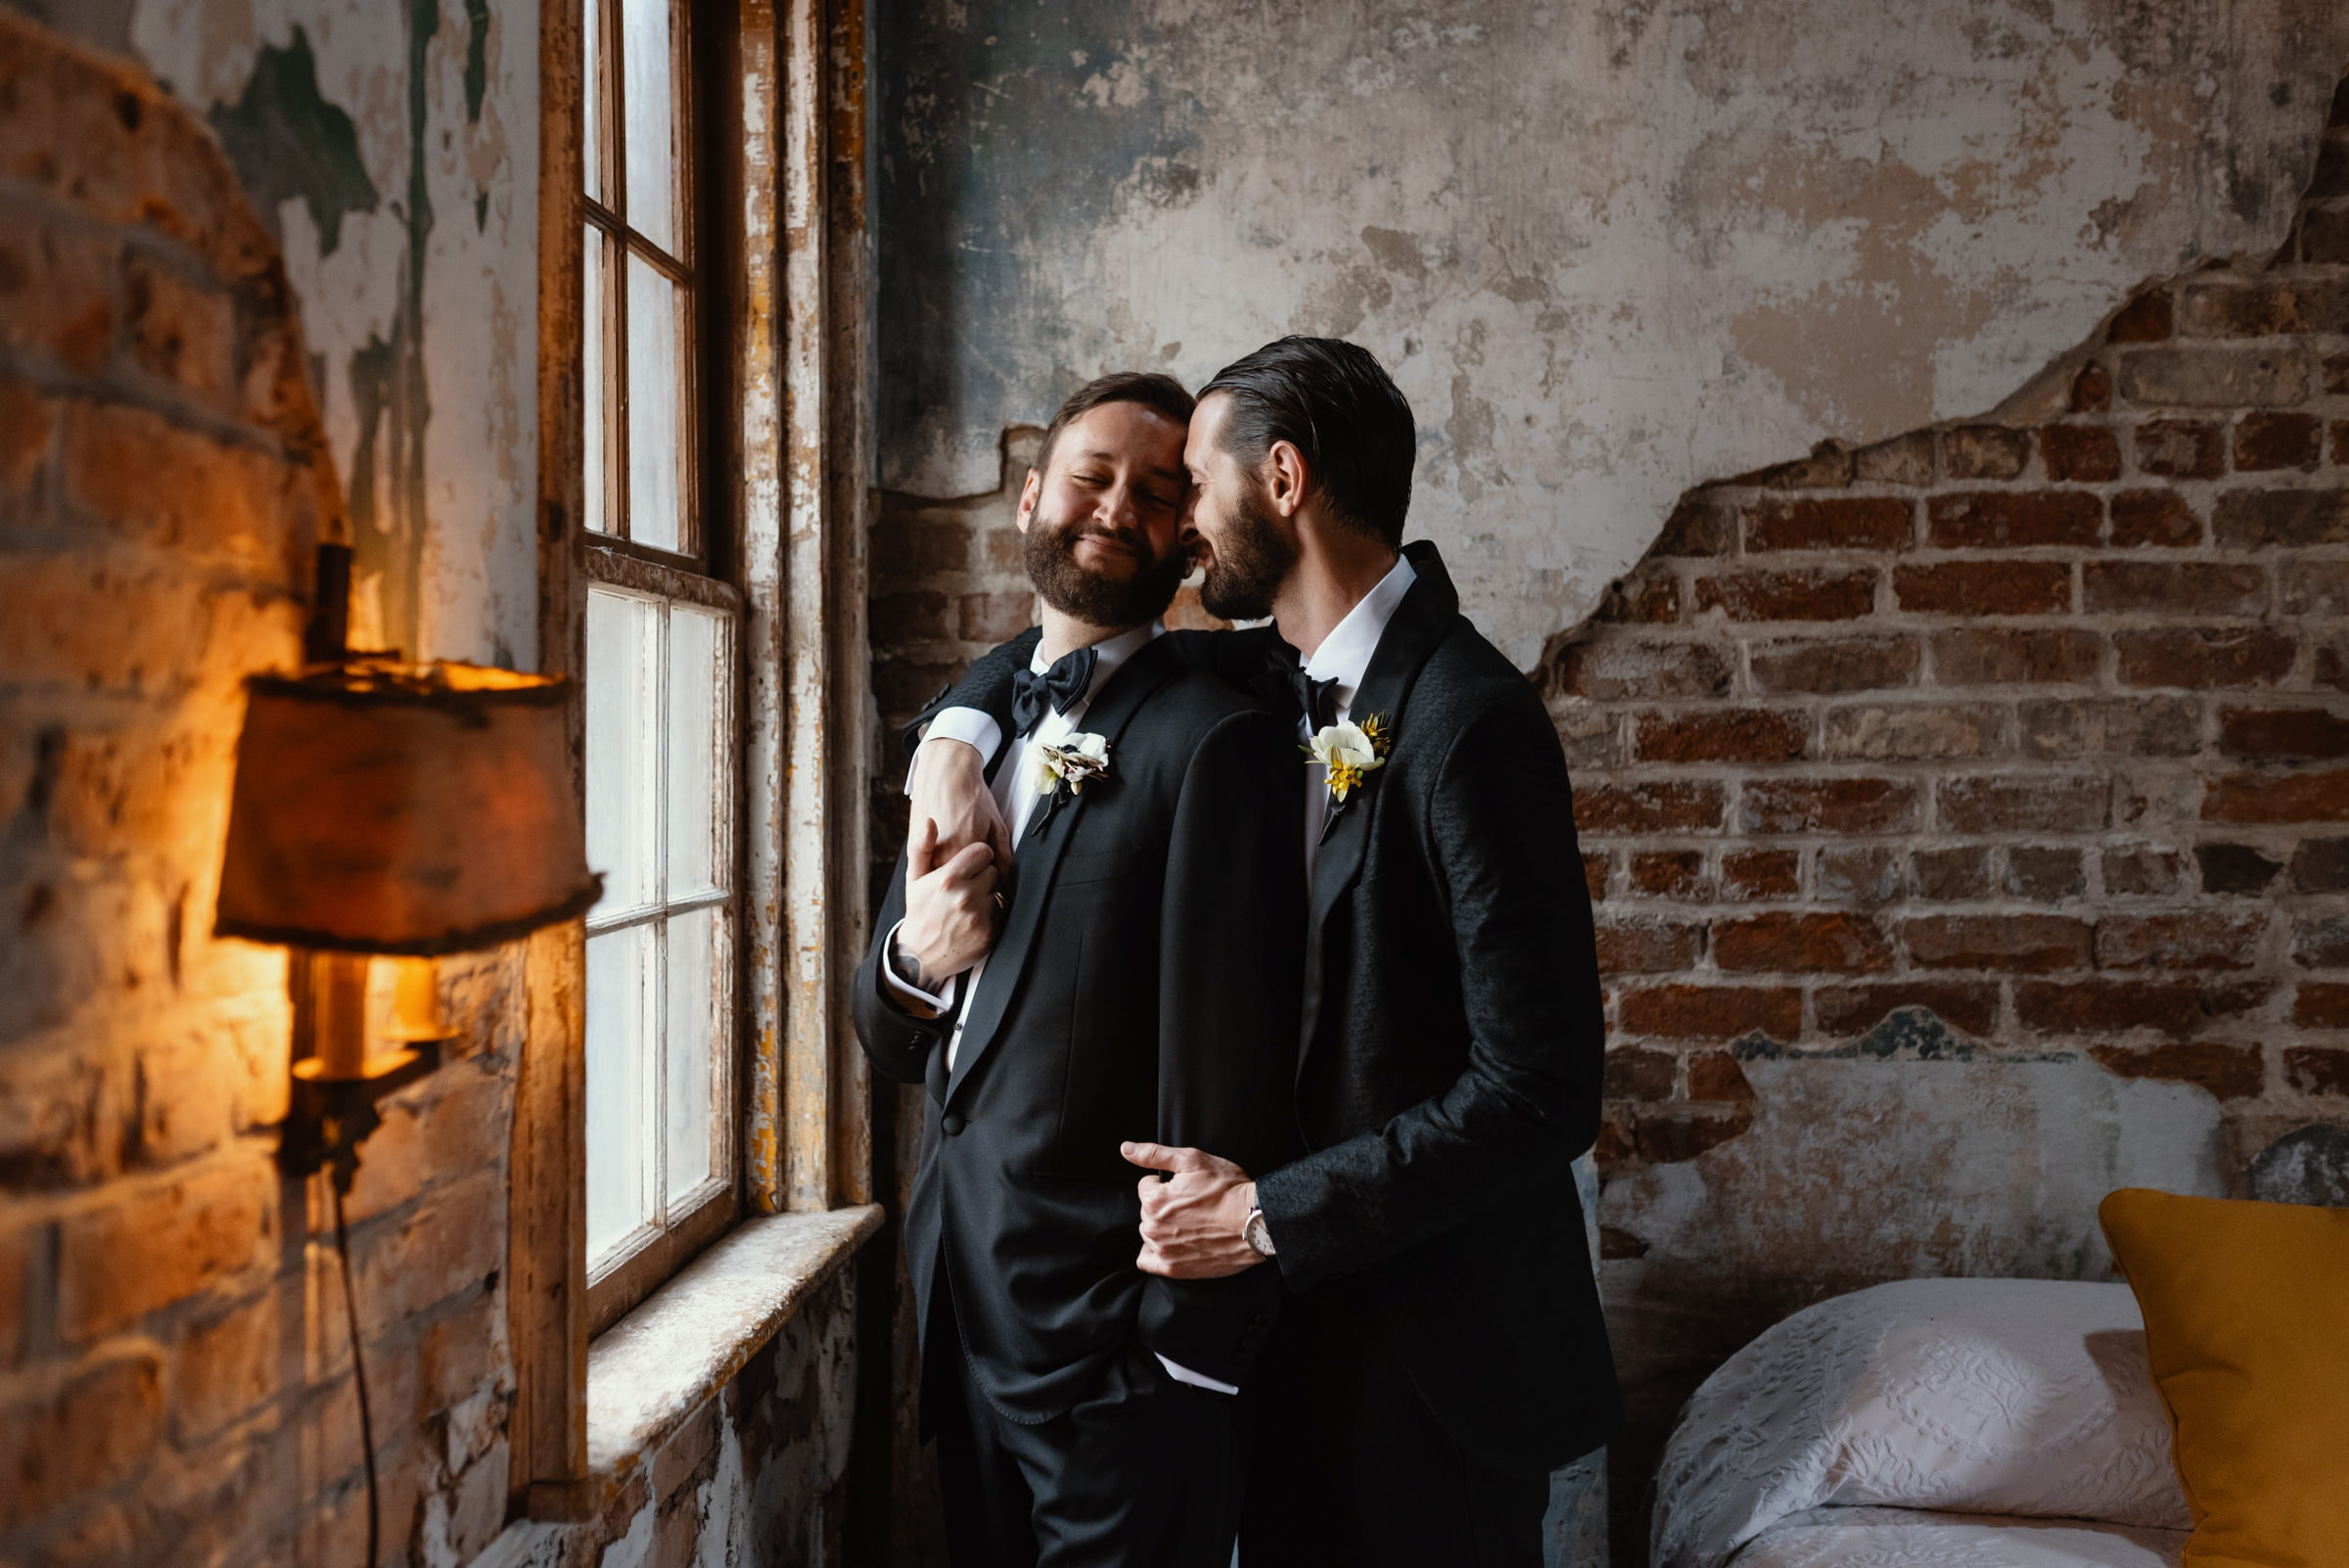 grooms-embracing-in-distressed-style-setting-dark-roux